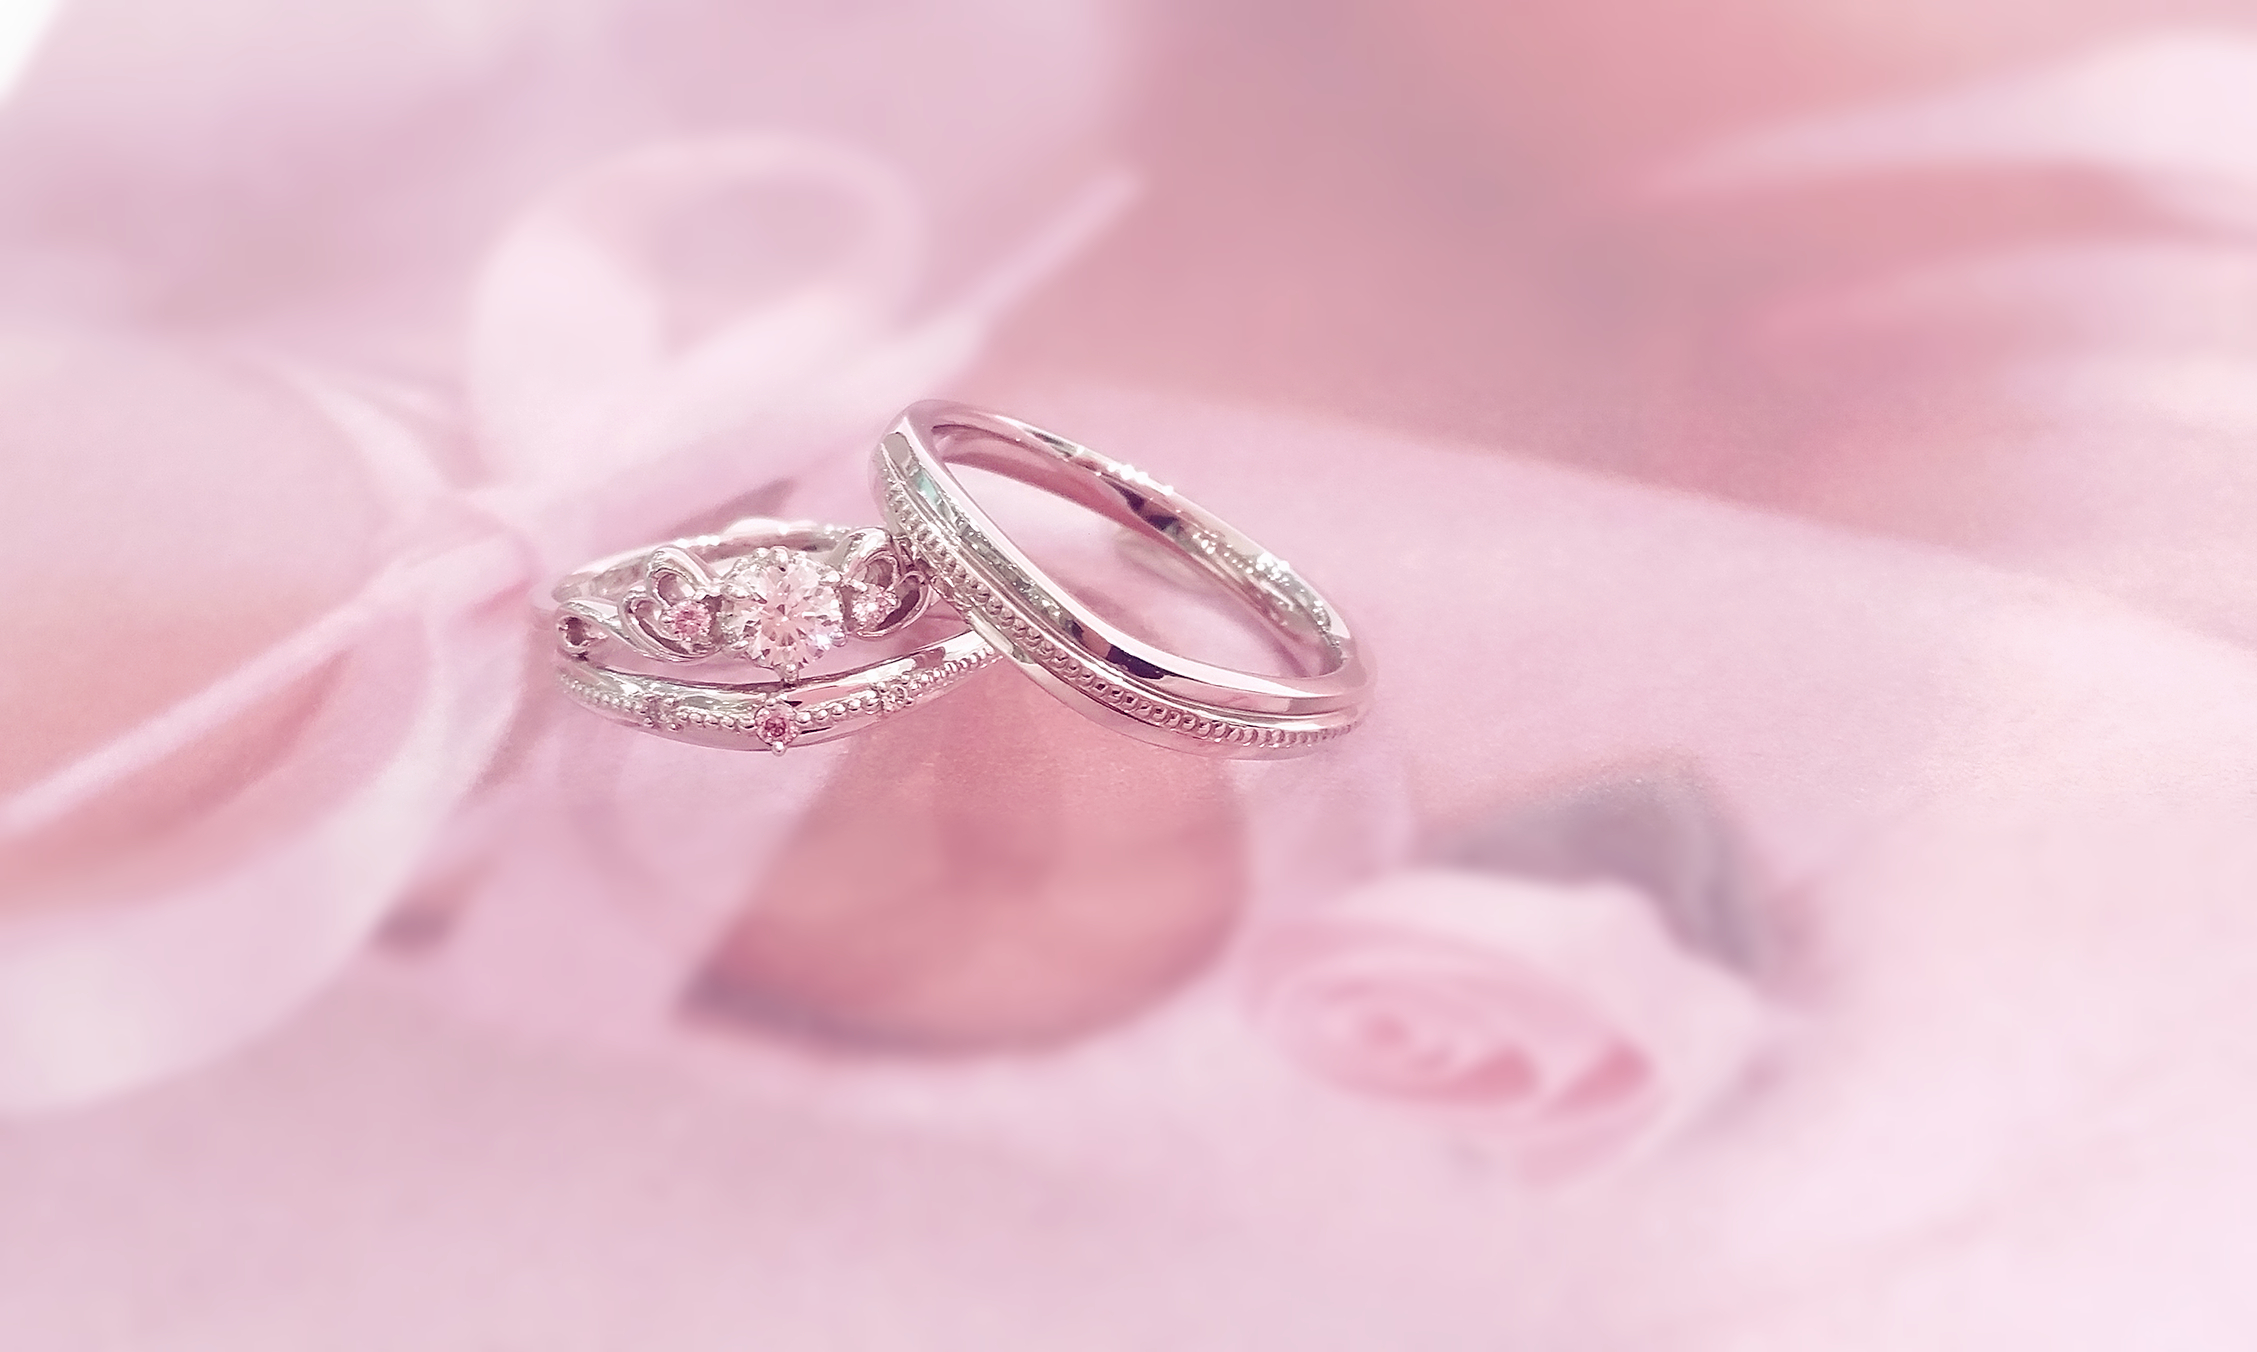 Blossoms Of Love - VENUS TEARS - Wedding Bands / Engagement Ring